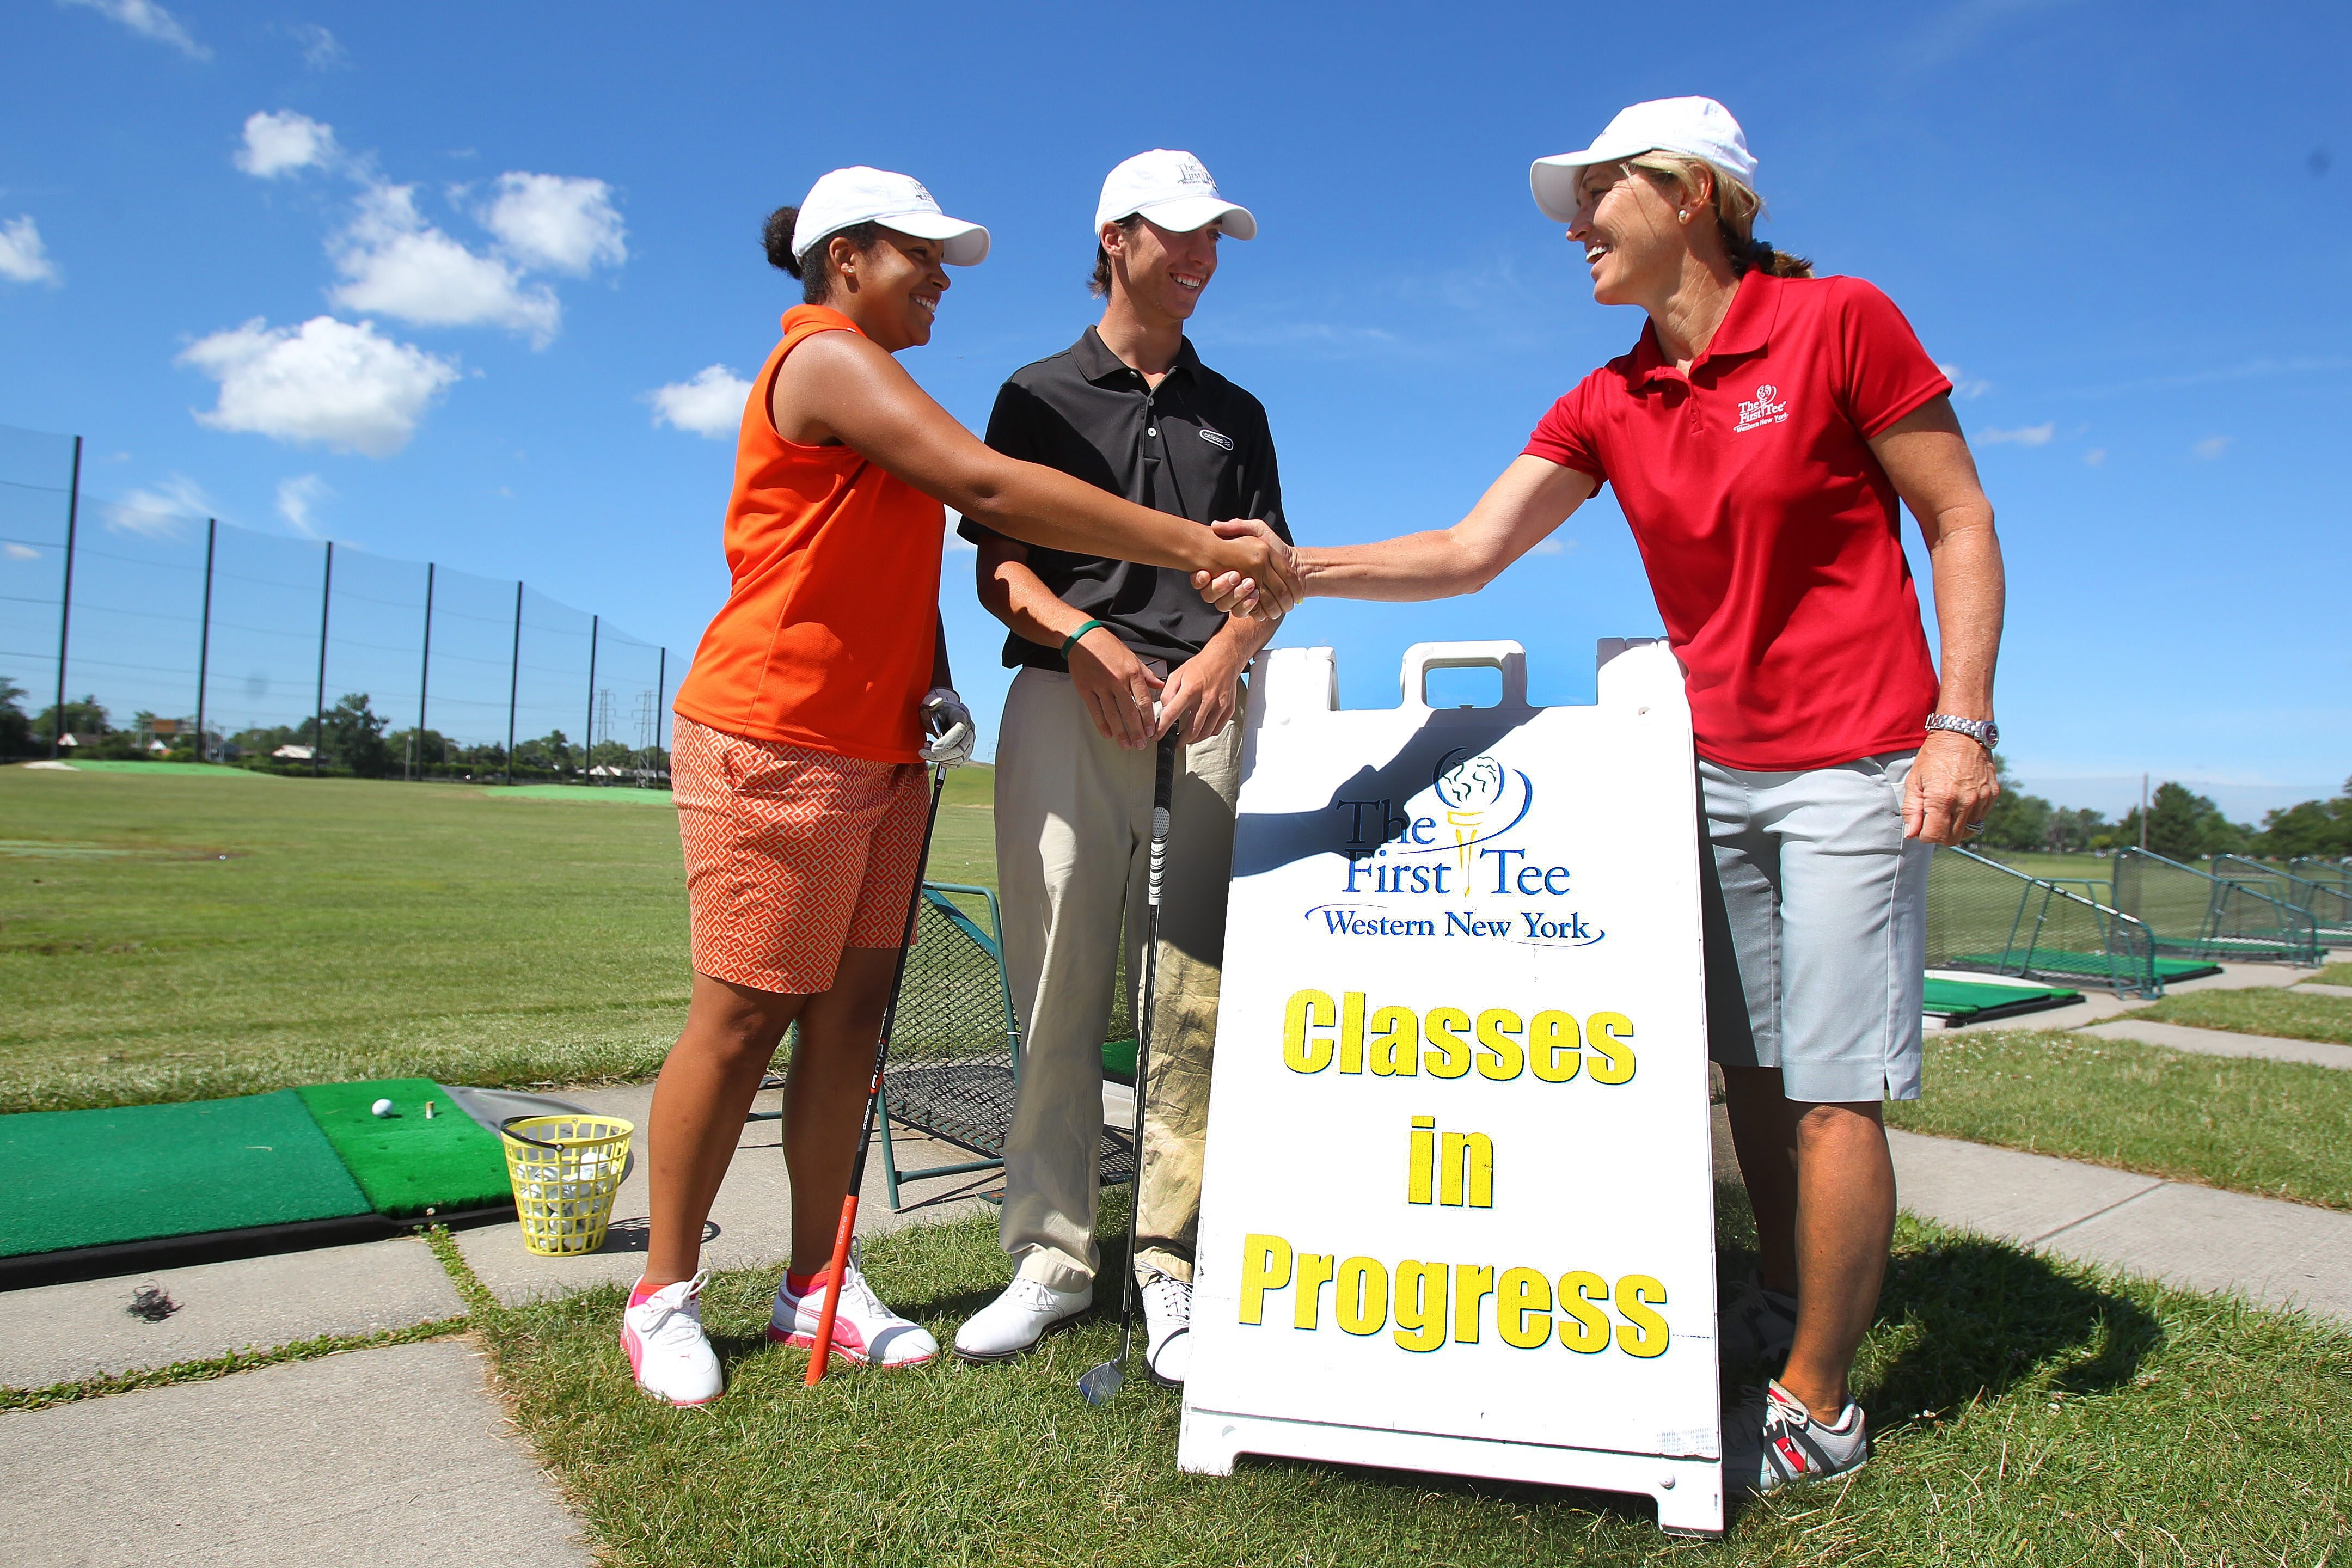 First Tee instructor Patty Jordan-Smith, right, greets Helen Busch and Gregory Sibick at the Brighton Driving Range in Tonawanda. Sibick and Busch both earned coveted playing opportunities.